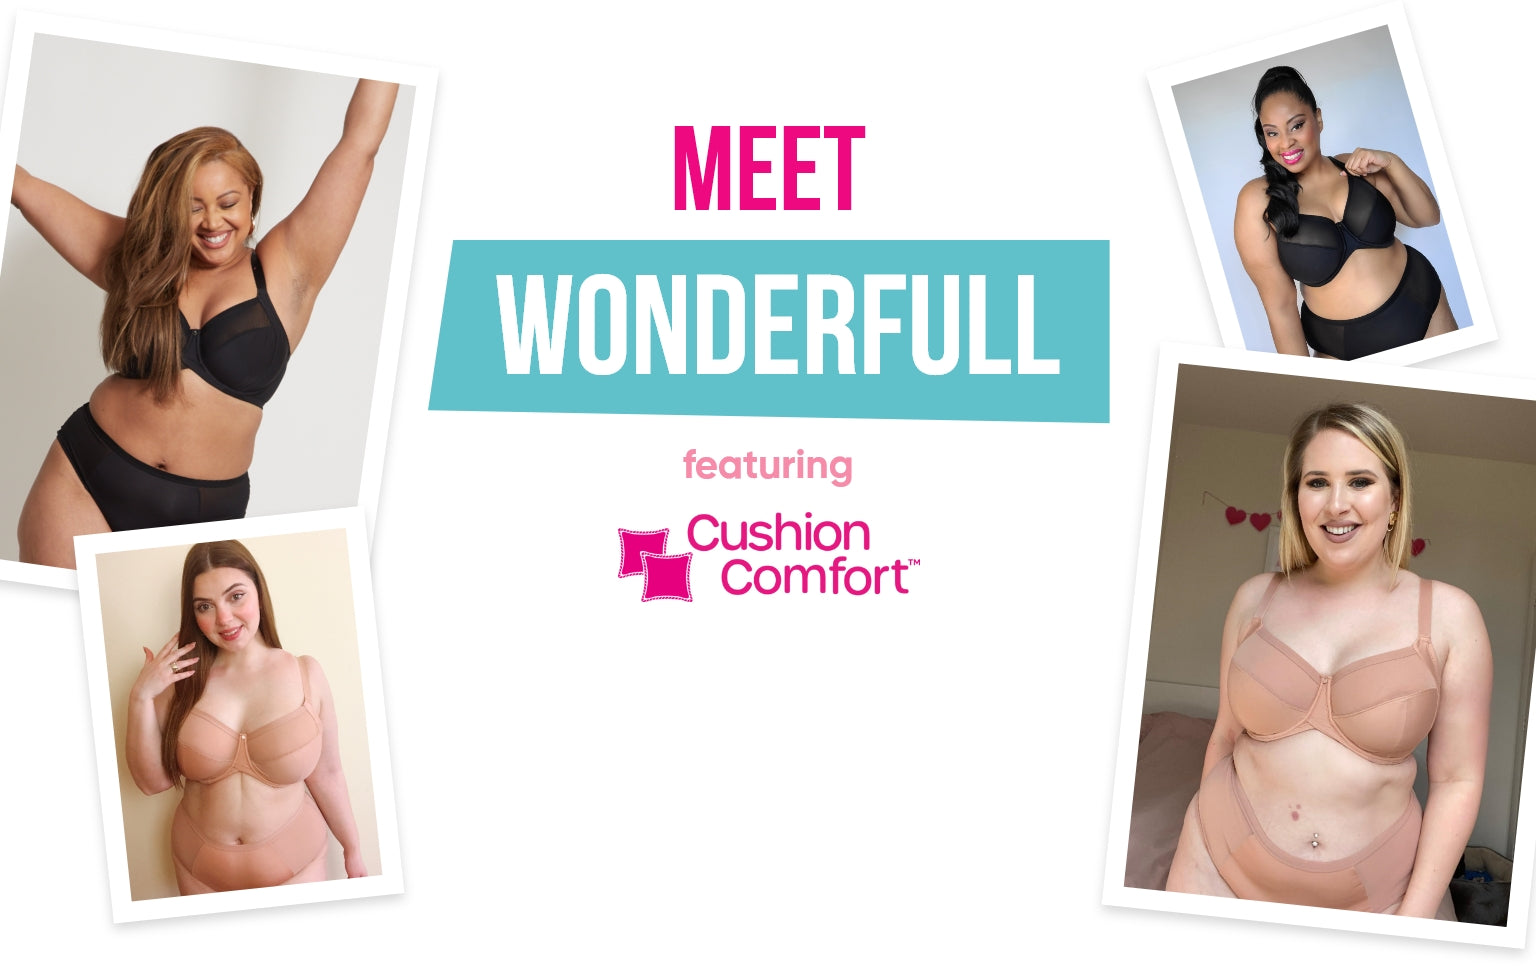 Meet Wonderfull, featuring Cushion Comfort